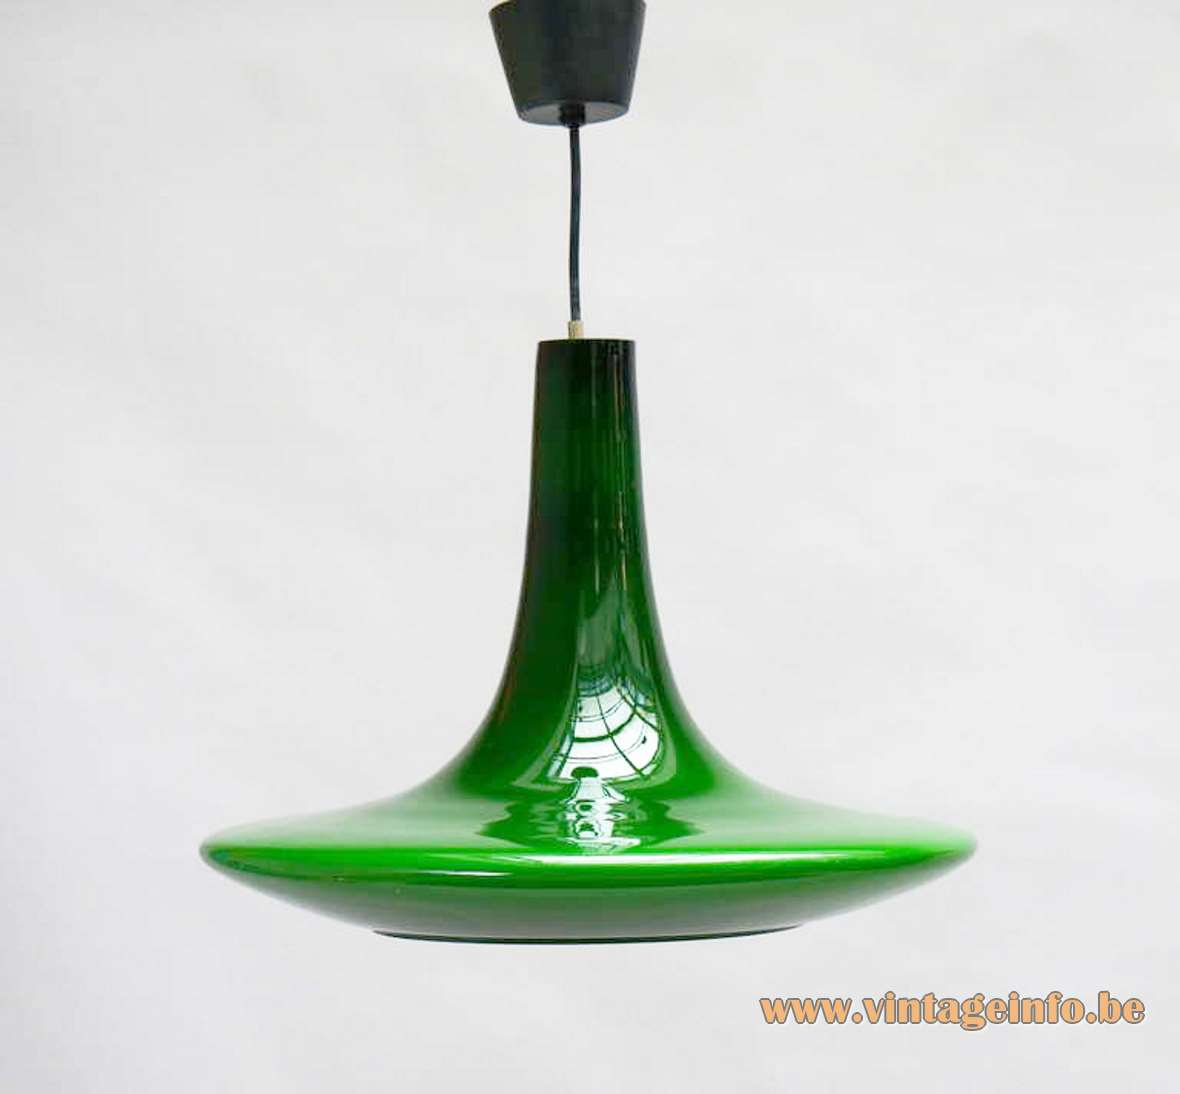 Peill + Putzler UFO pendant lamp model AH11 hand blown glass 1970s Germany MCM green